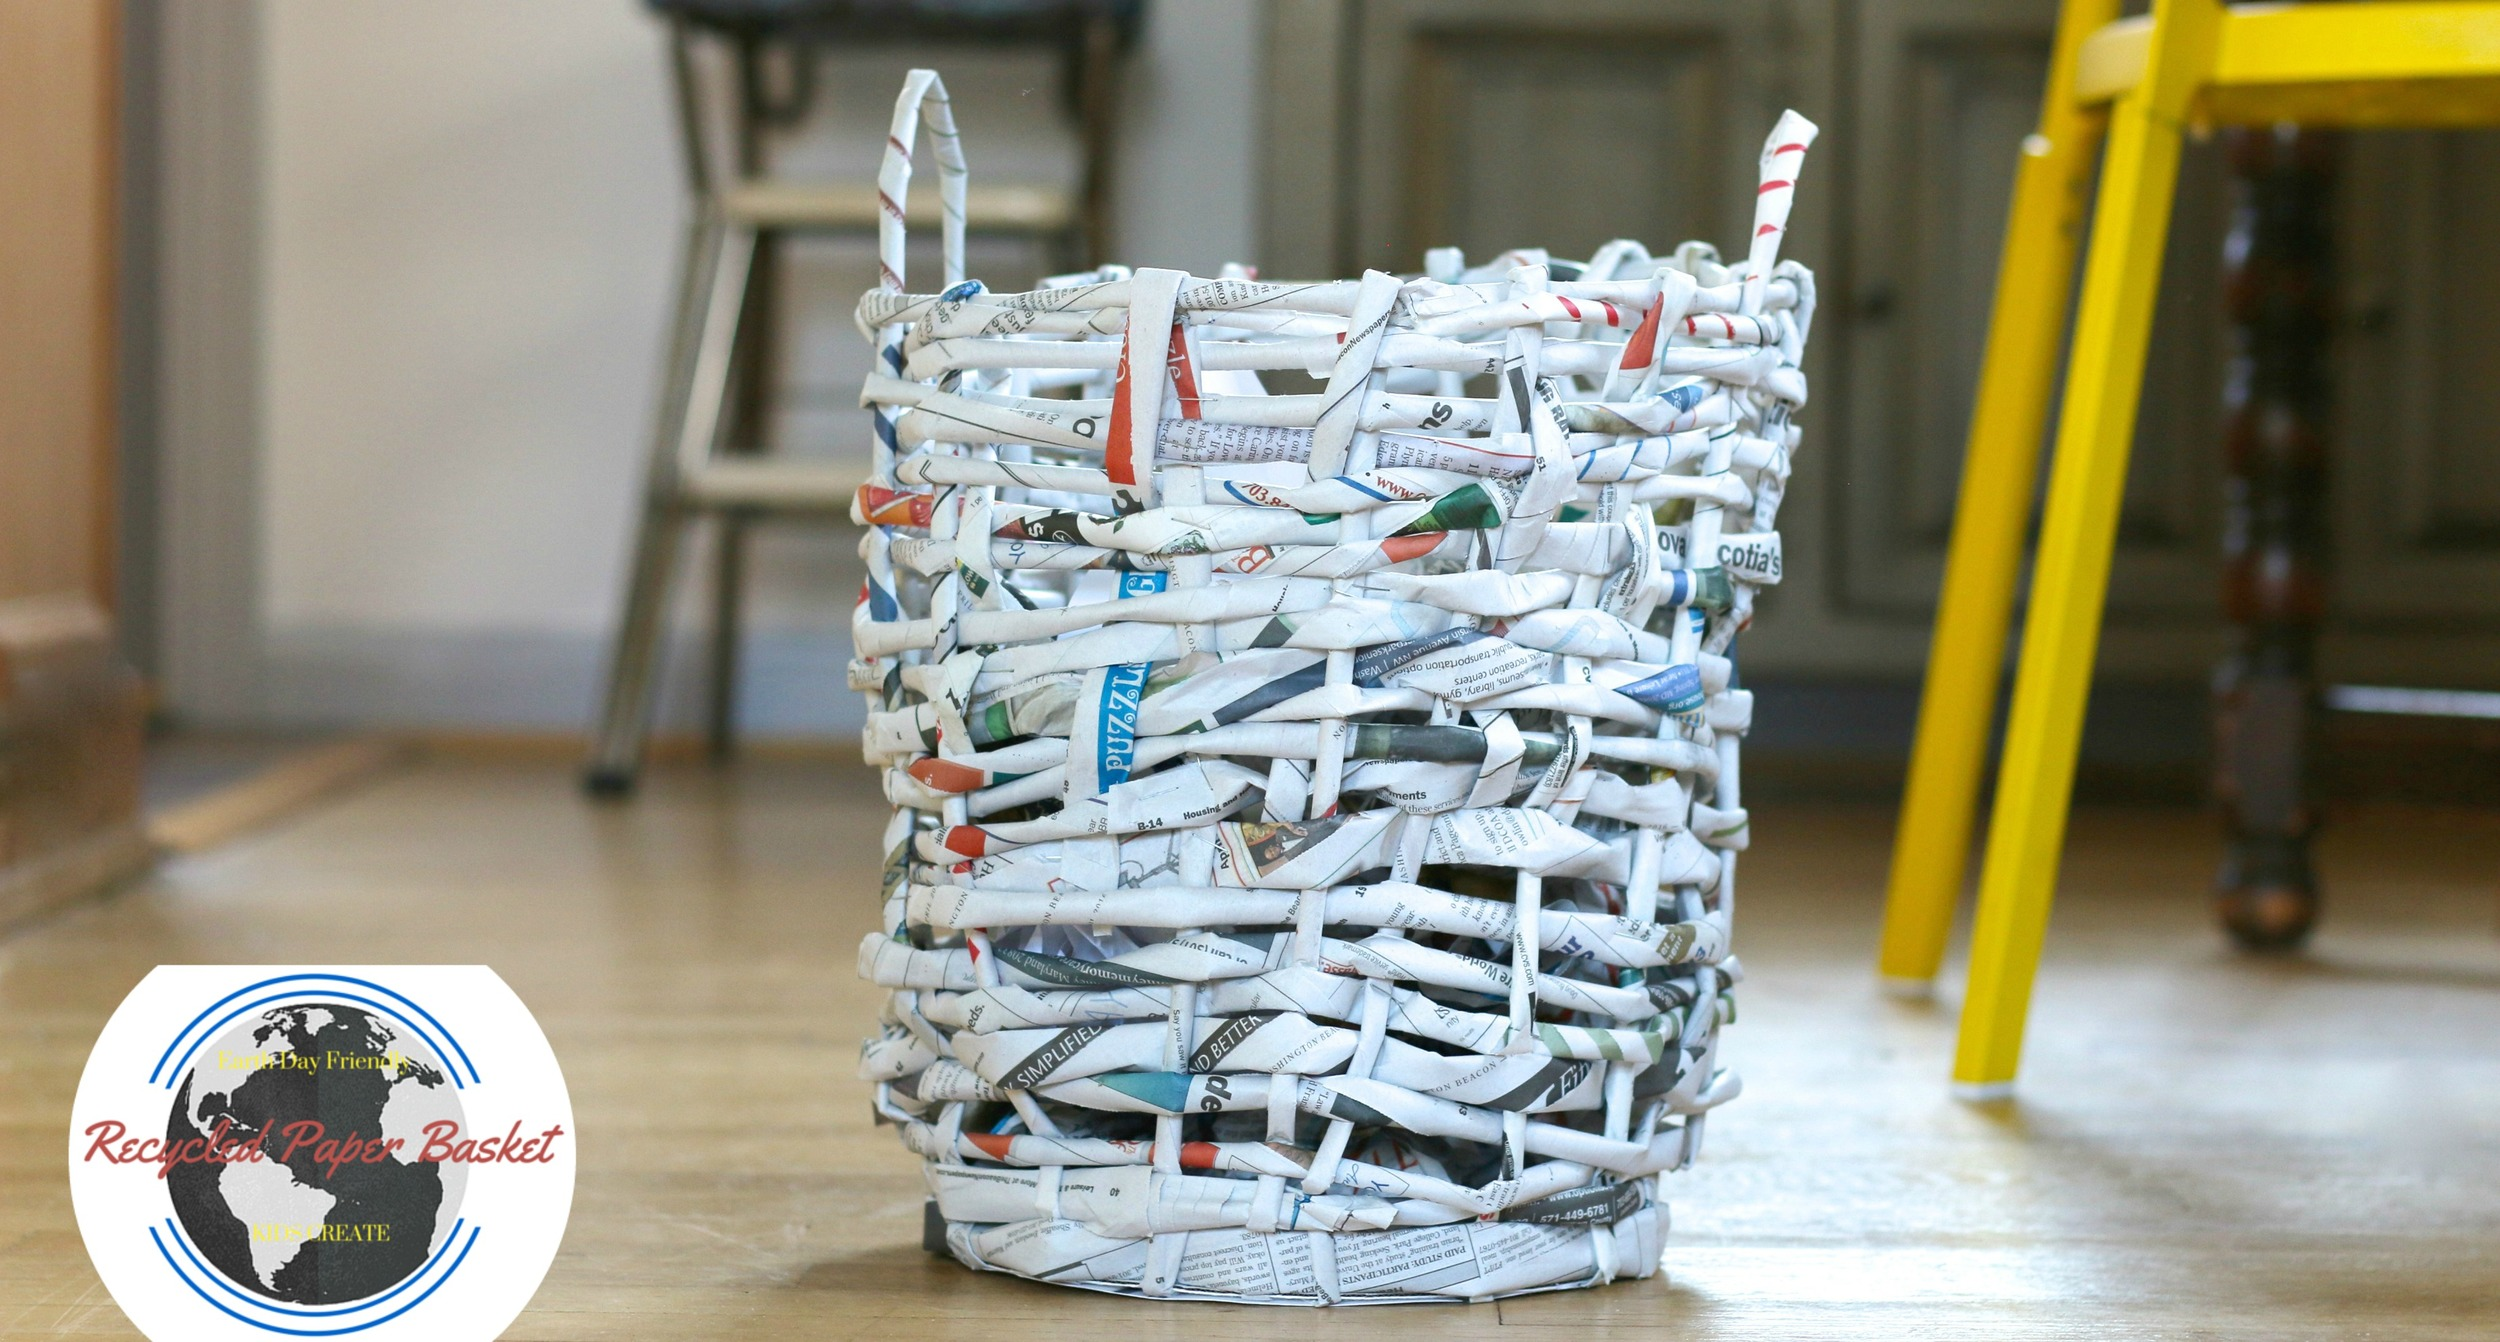 recycled paper basket.jpg